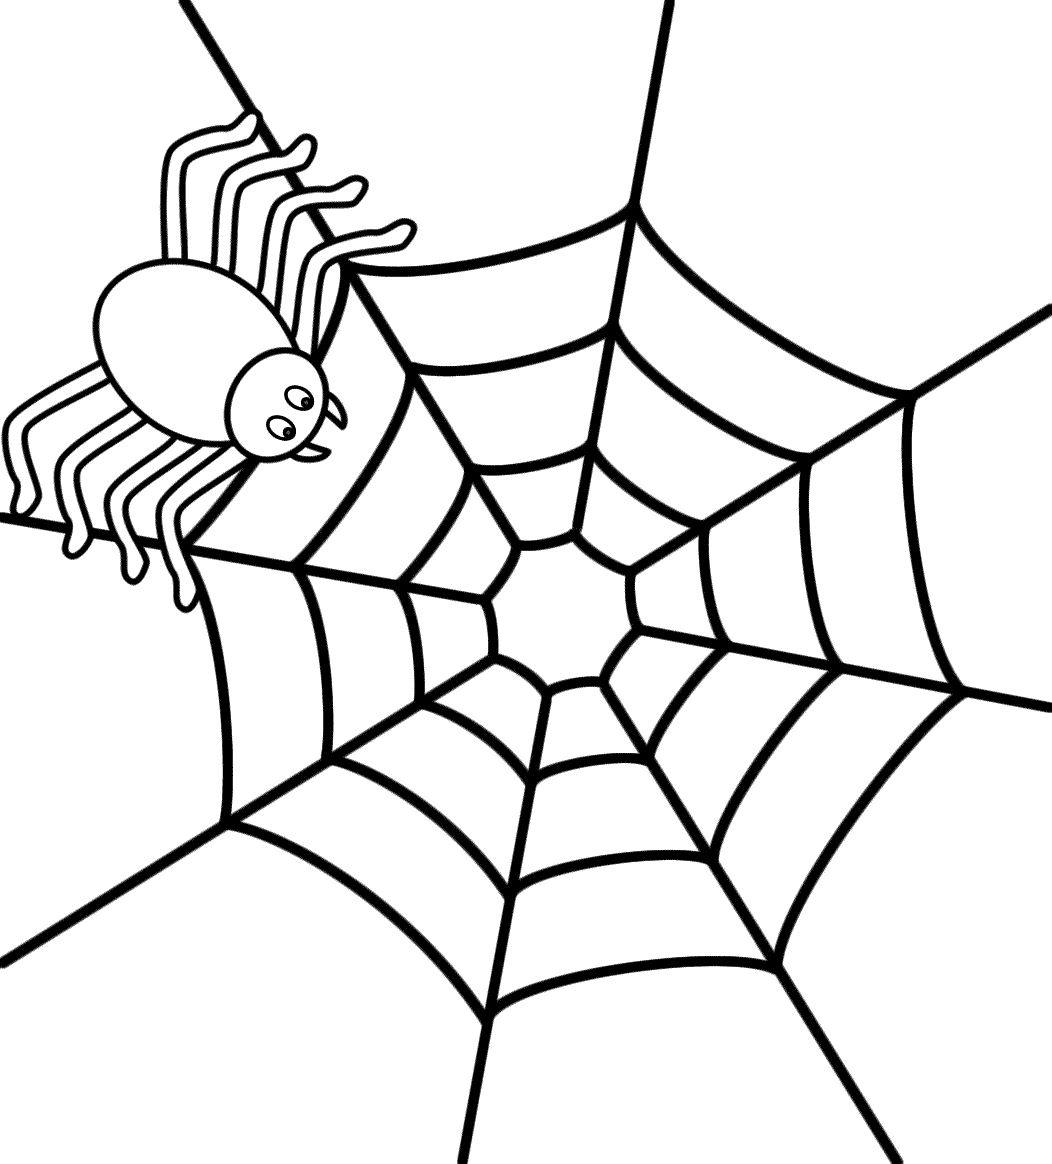 Spider Web Drawing Easy At Getdrawings